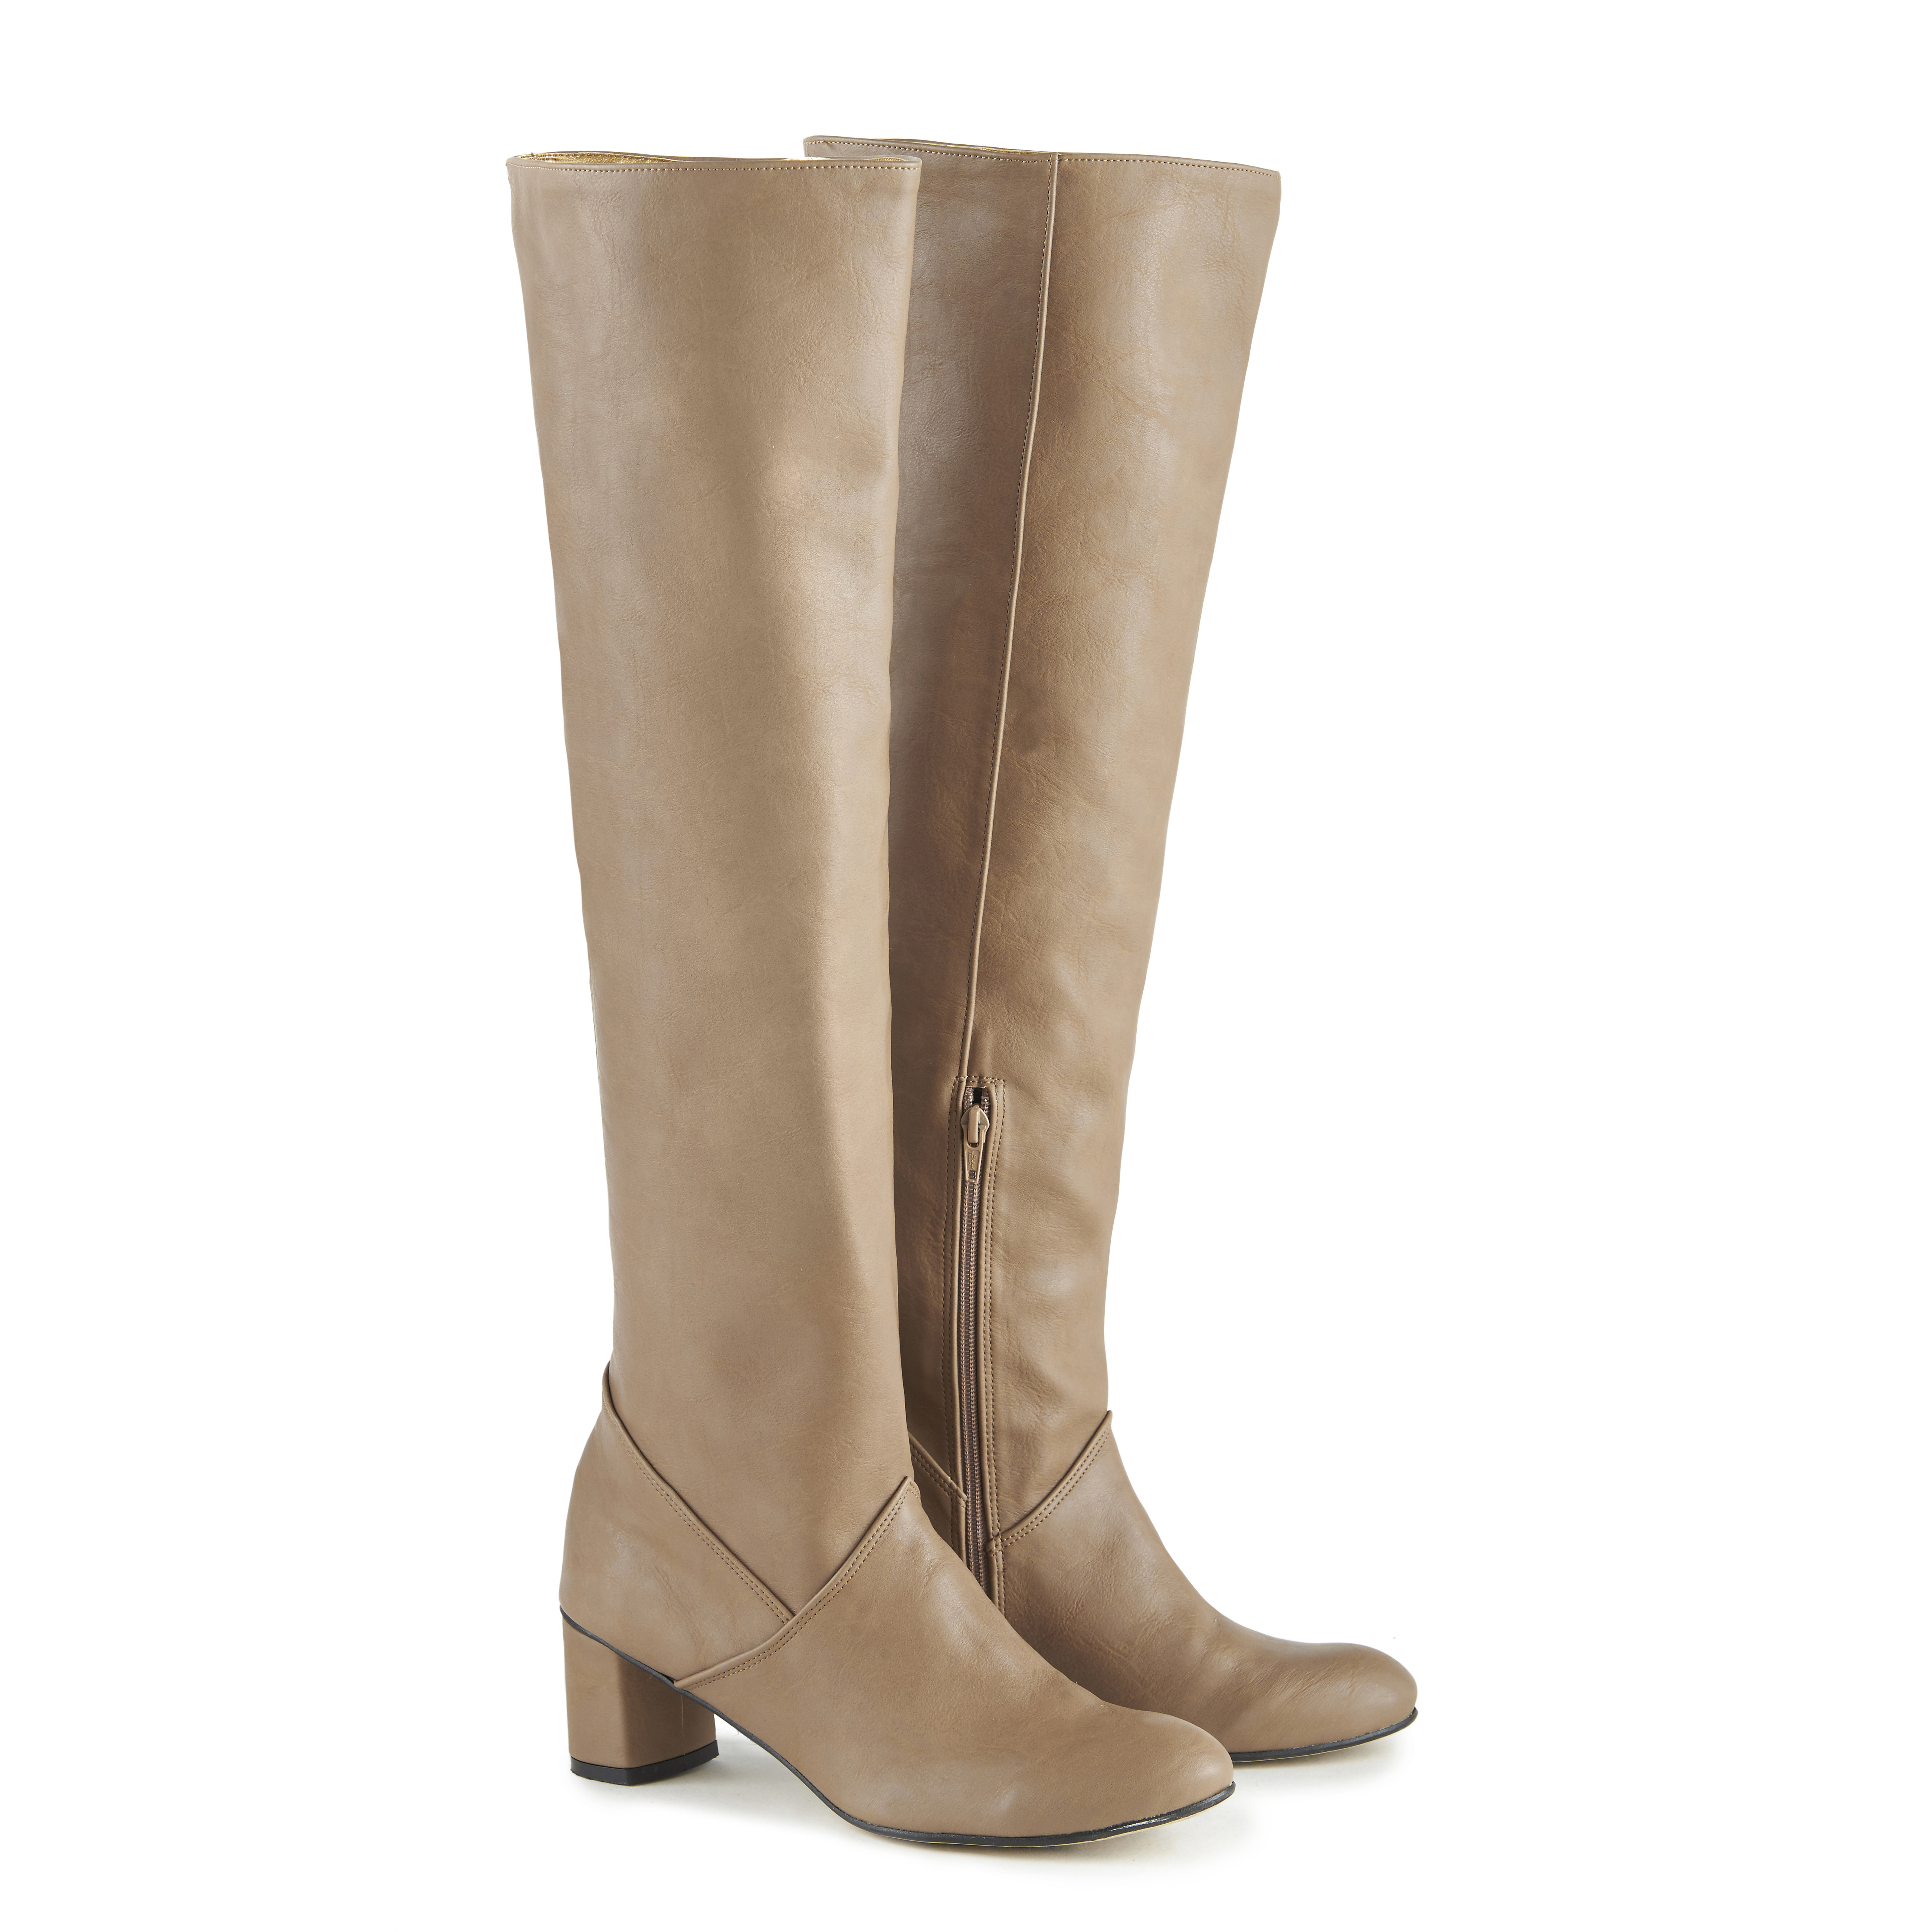 Donna vegan leather over-the-knee boots